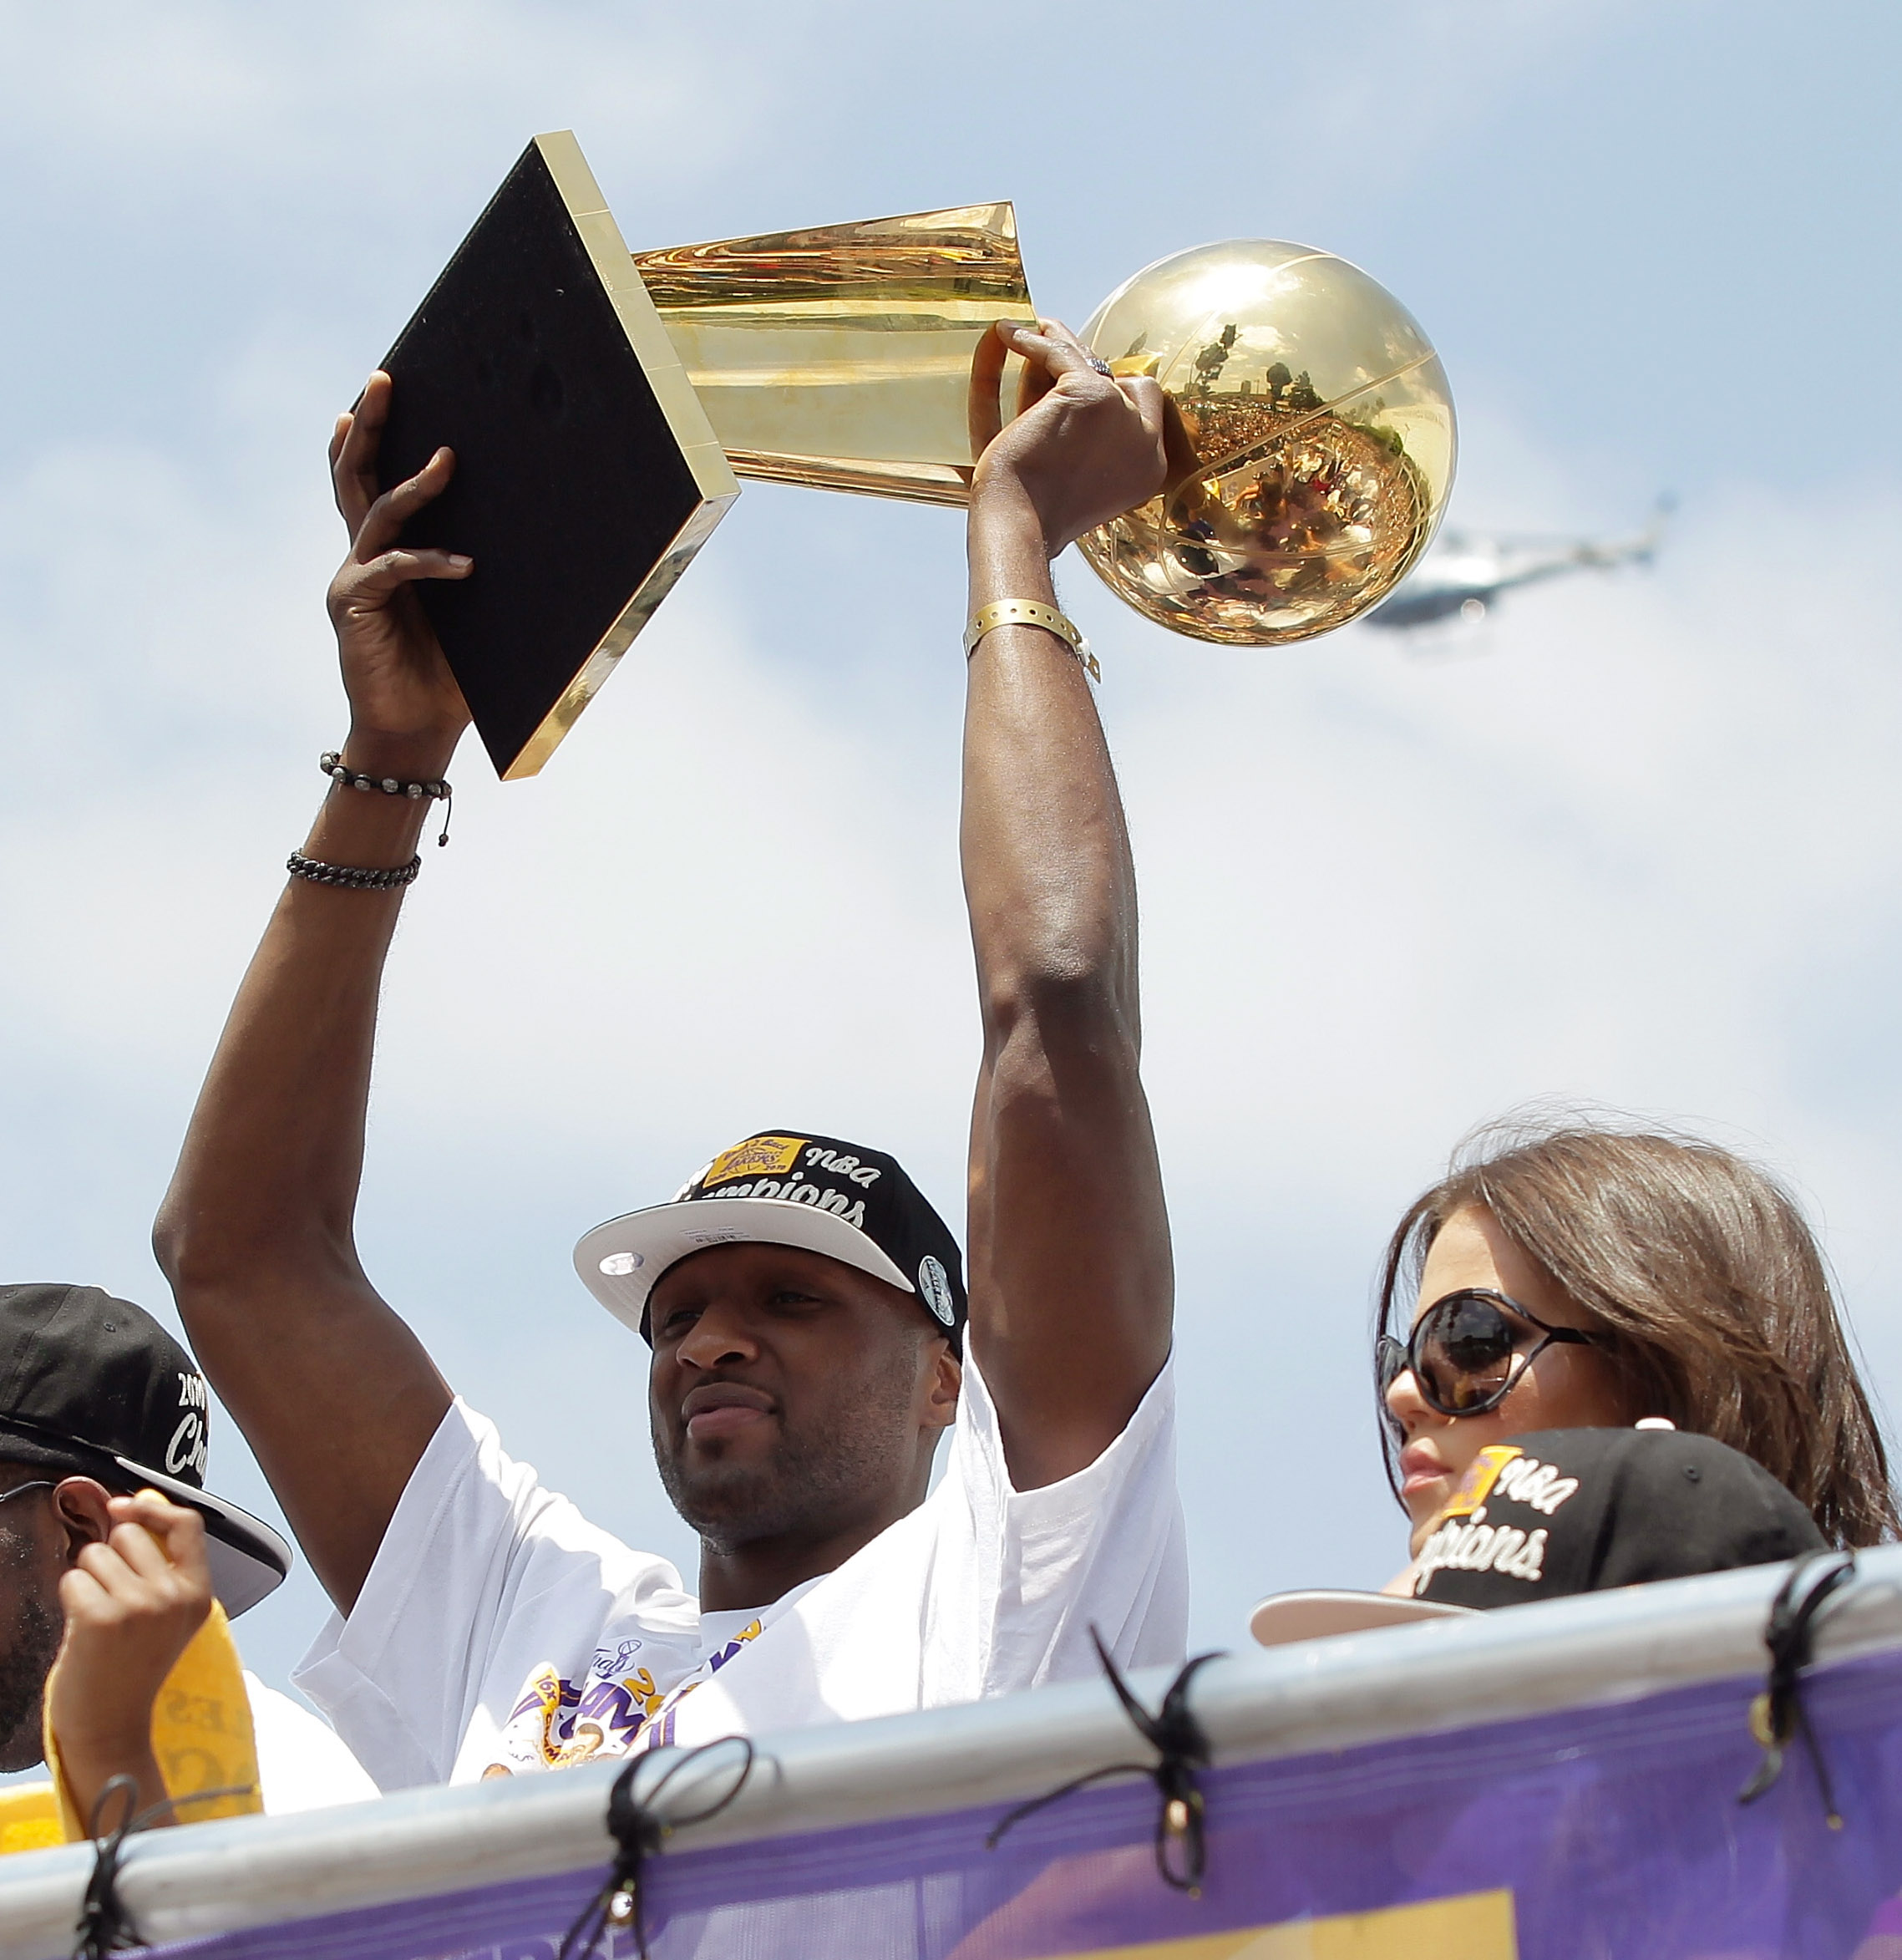 Odom campione Nba con i Lakers